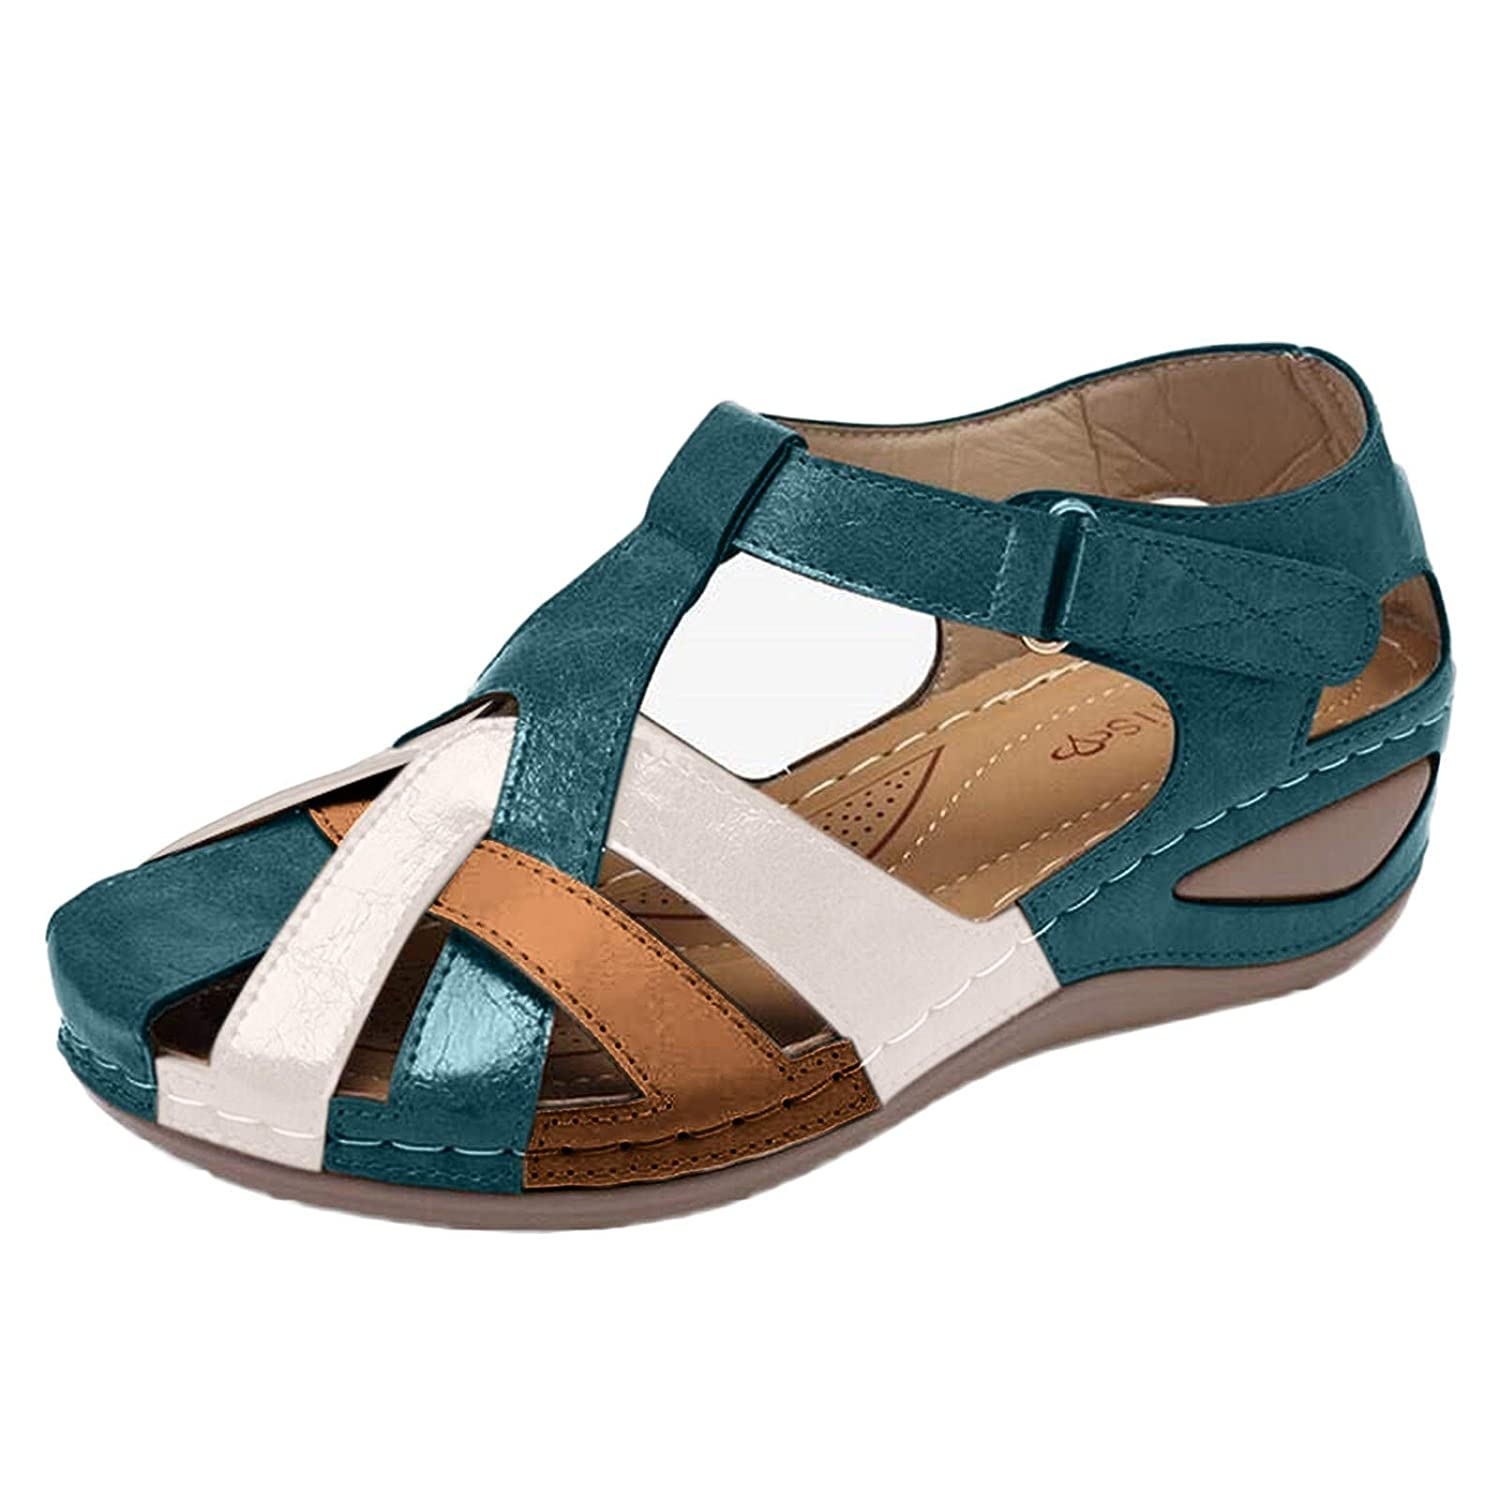 Fullwei Superlatite Sandals for Women Summer Shipping included Lightweight Casual Gladia